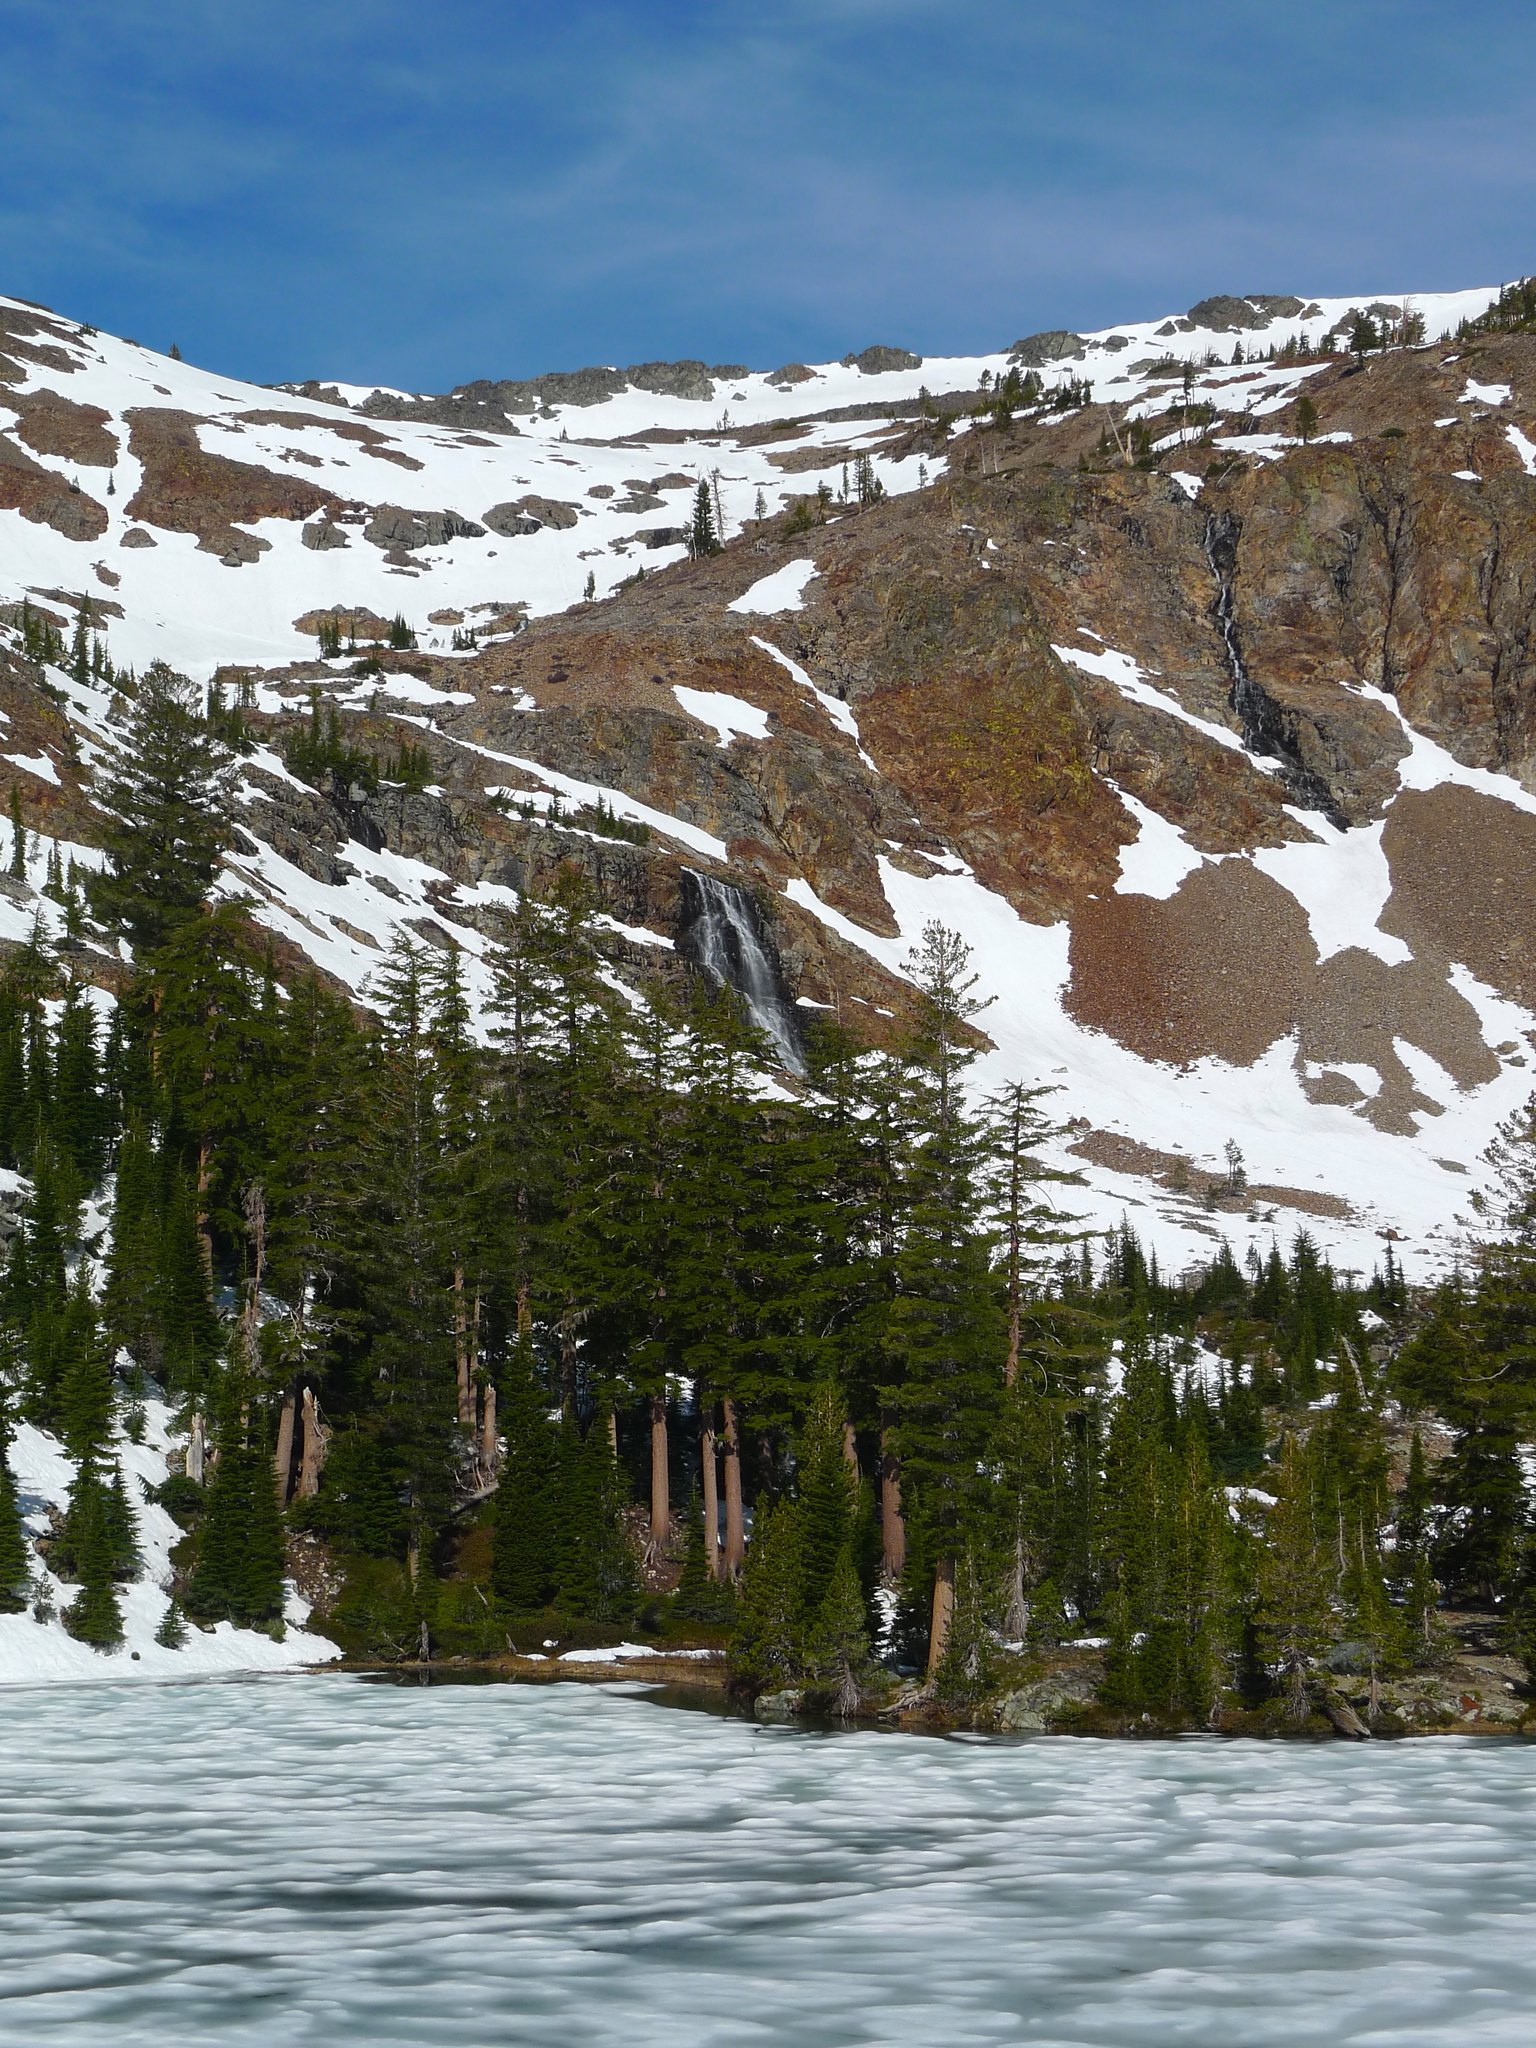 Alta Morris Lake and the waterfalls that tumble down from Jack's and Dick's snowfields.